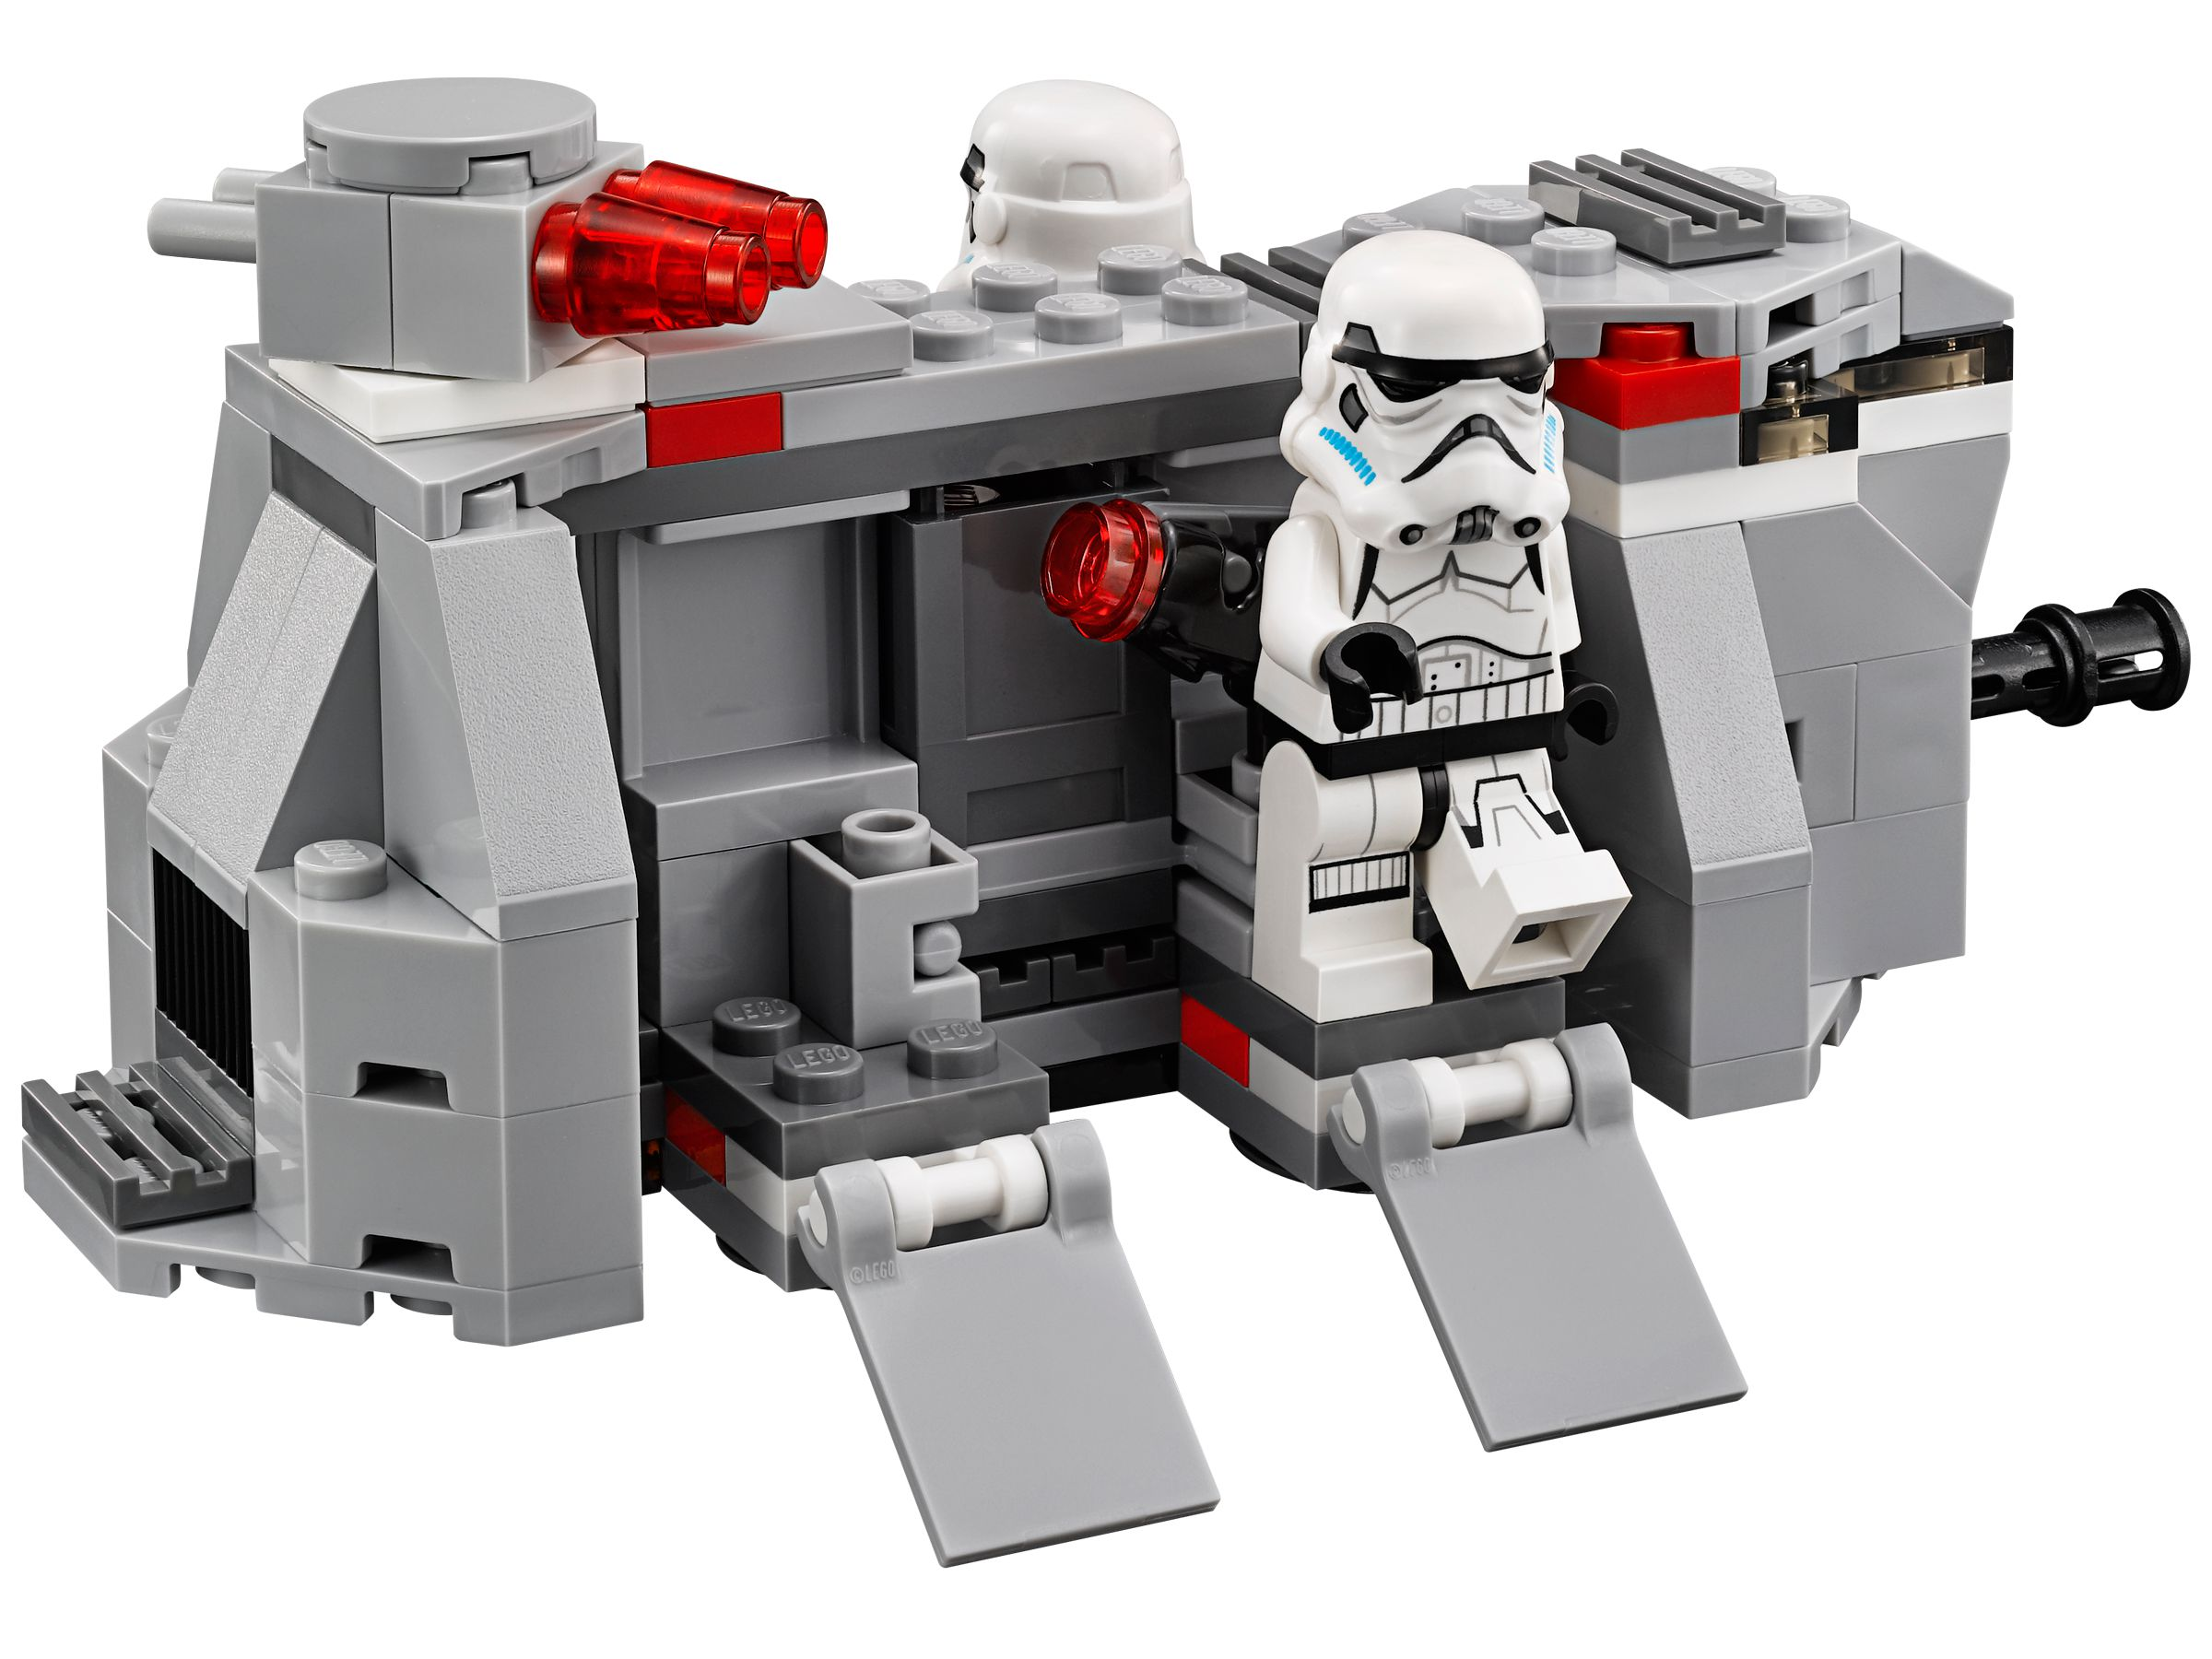 LEGO Star Wars 75078 Imperial Troop Transport LEGO_75078_alt3.jpg